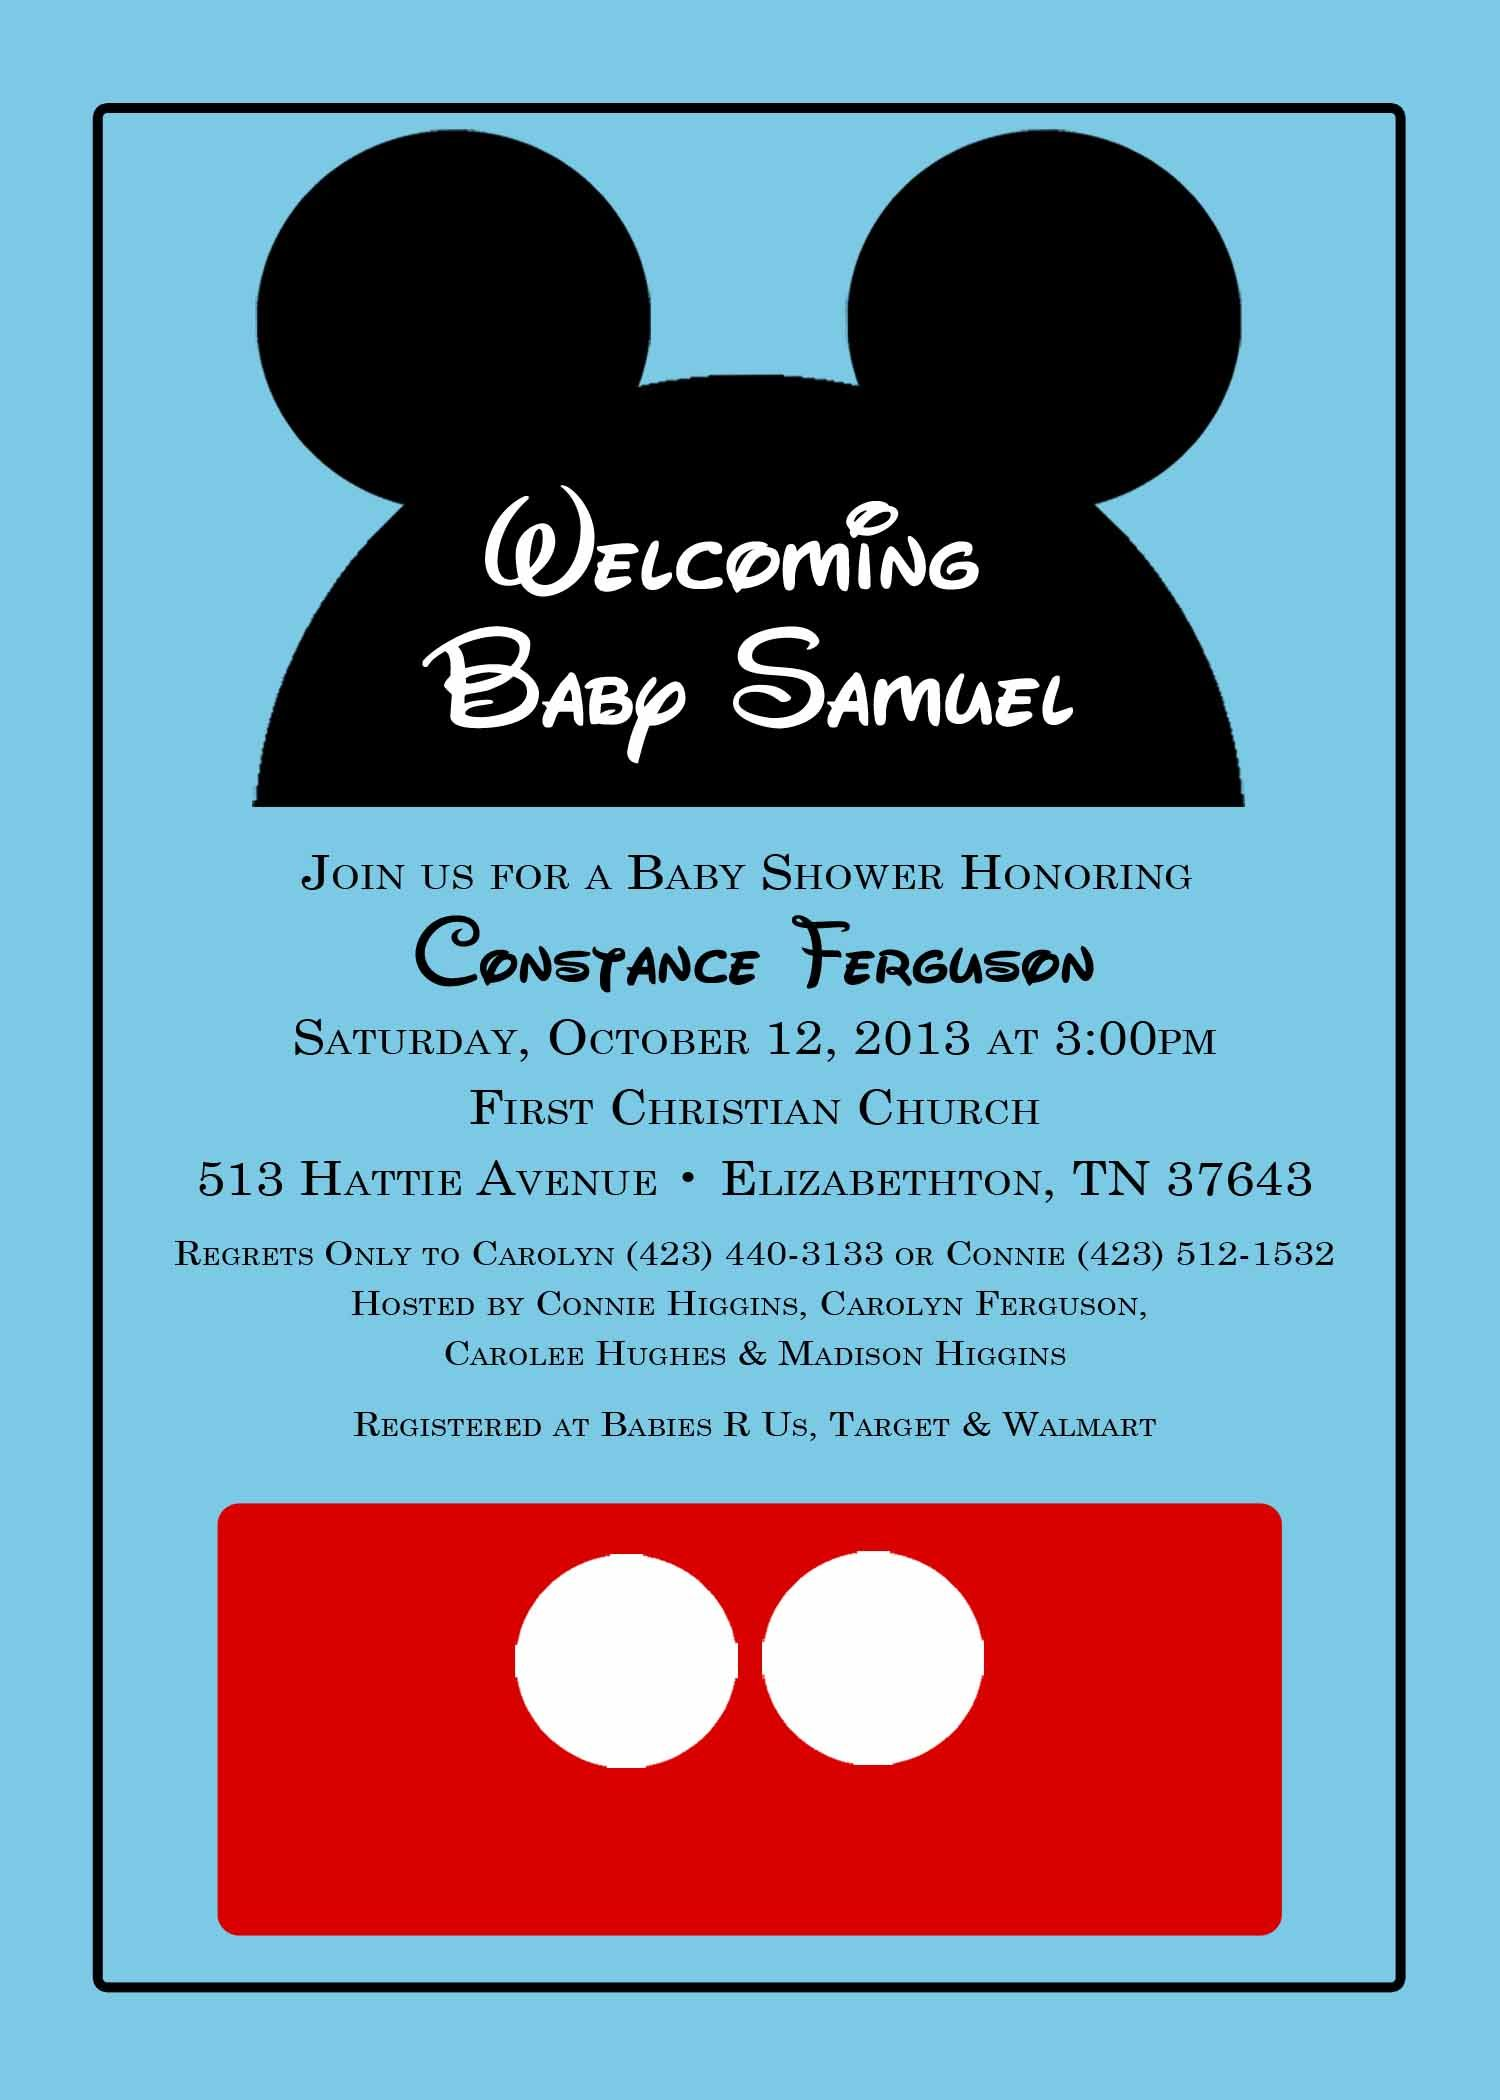 Mickey Mouse baby shower invitation from katedidesign on etsy.com ...